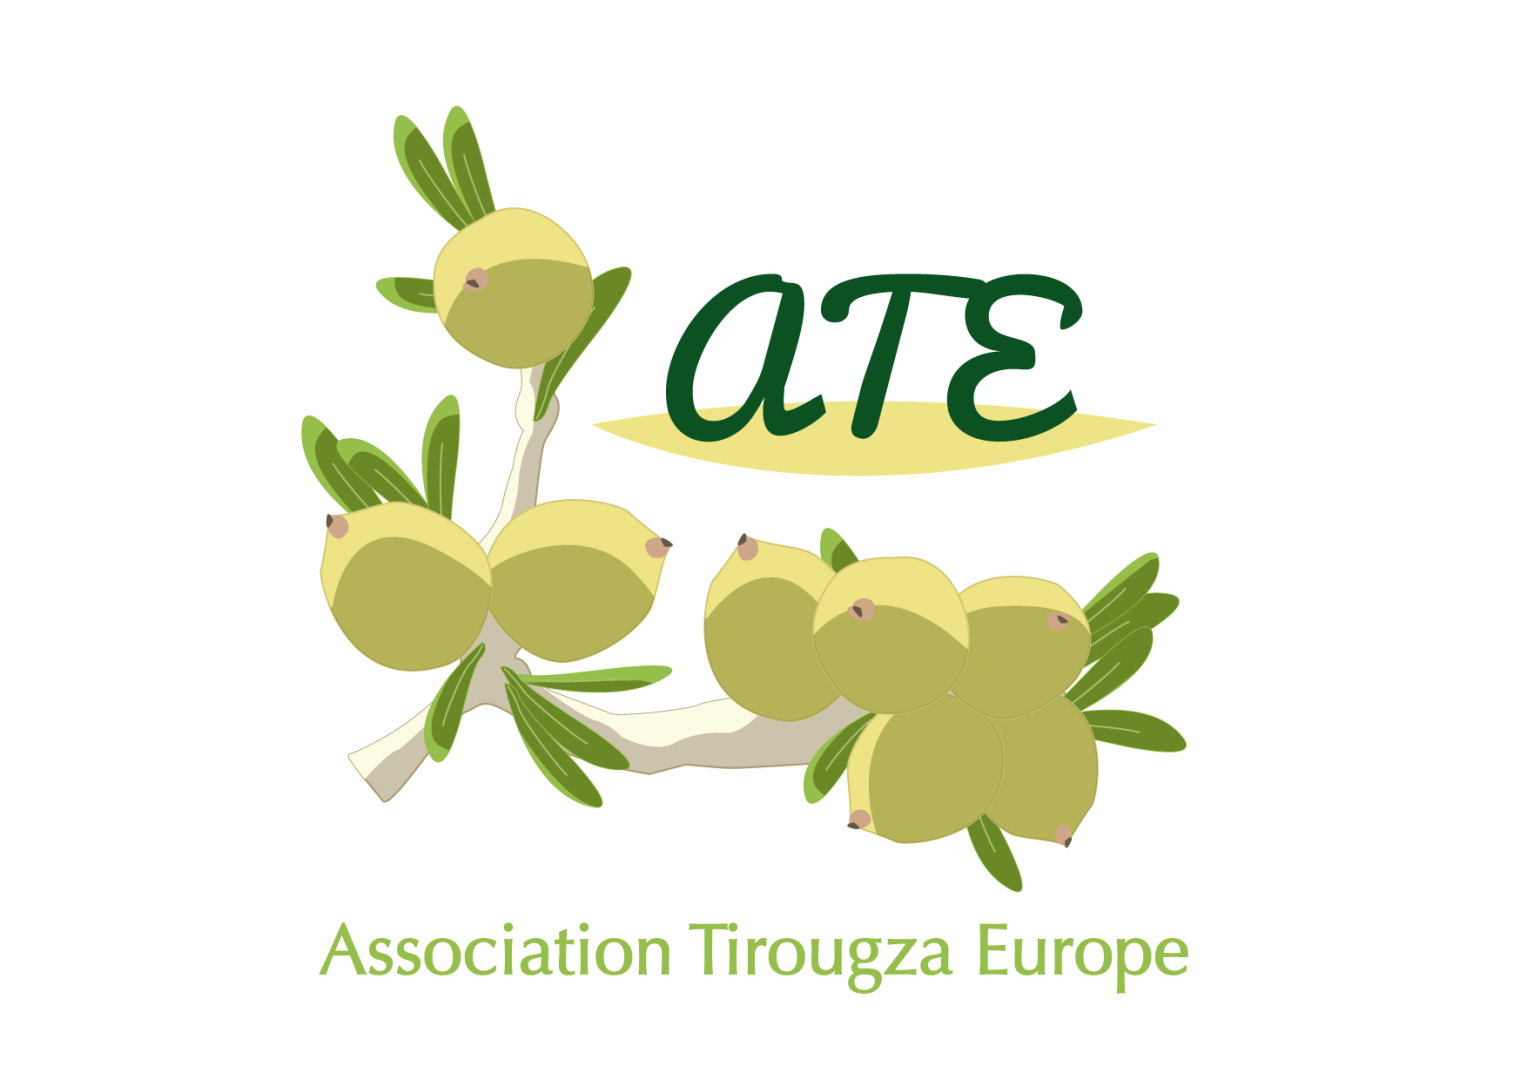 Association - Association Tirougza Europe